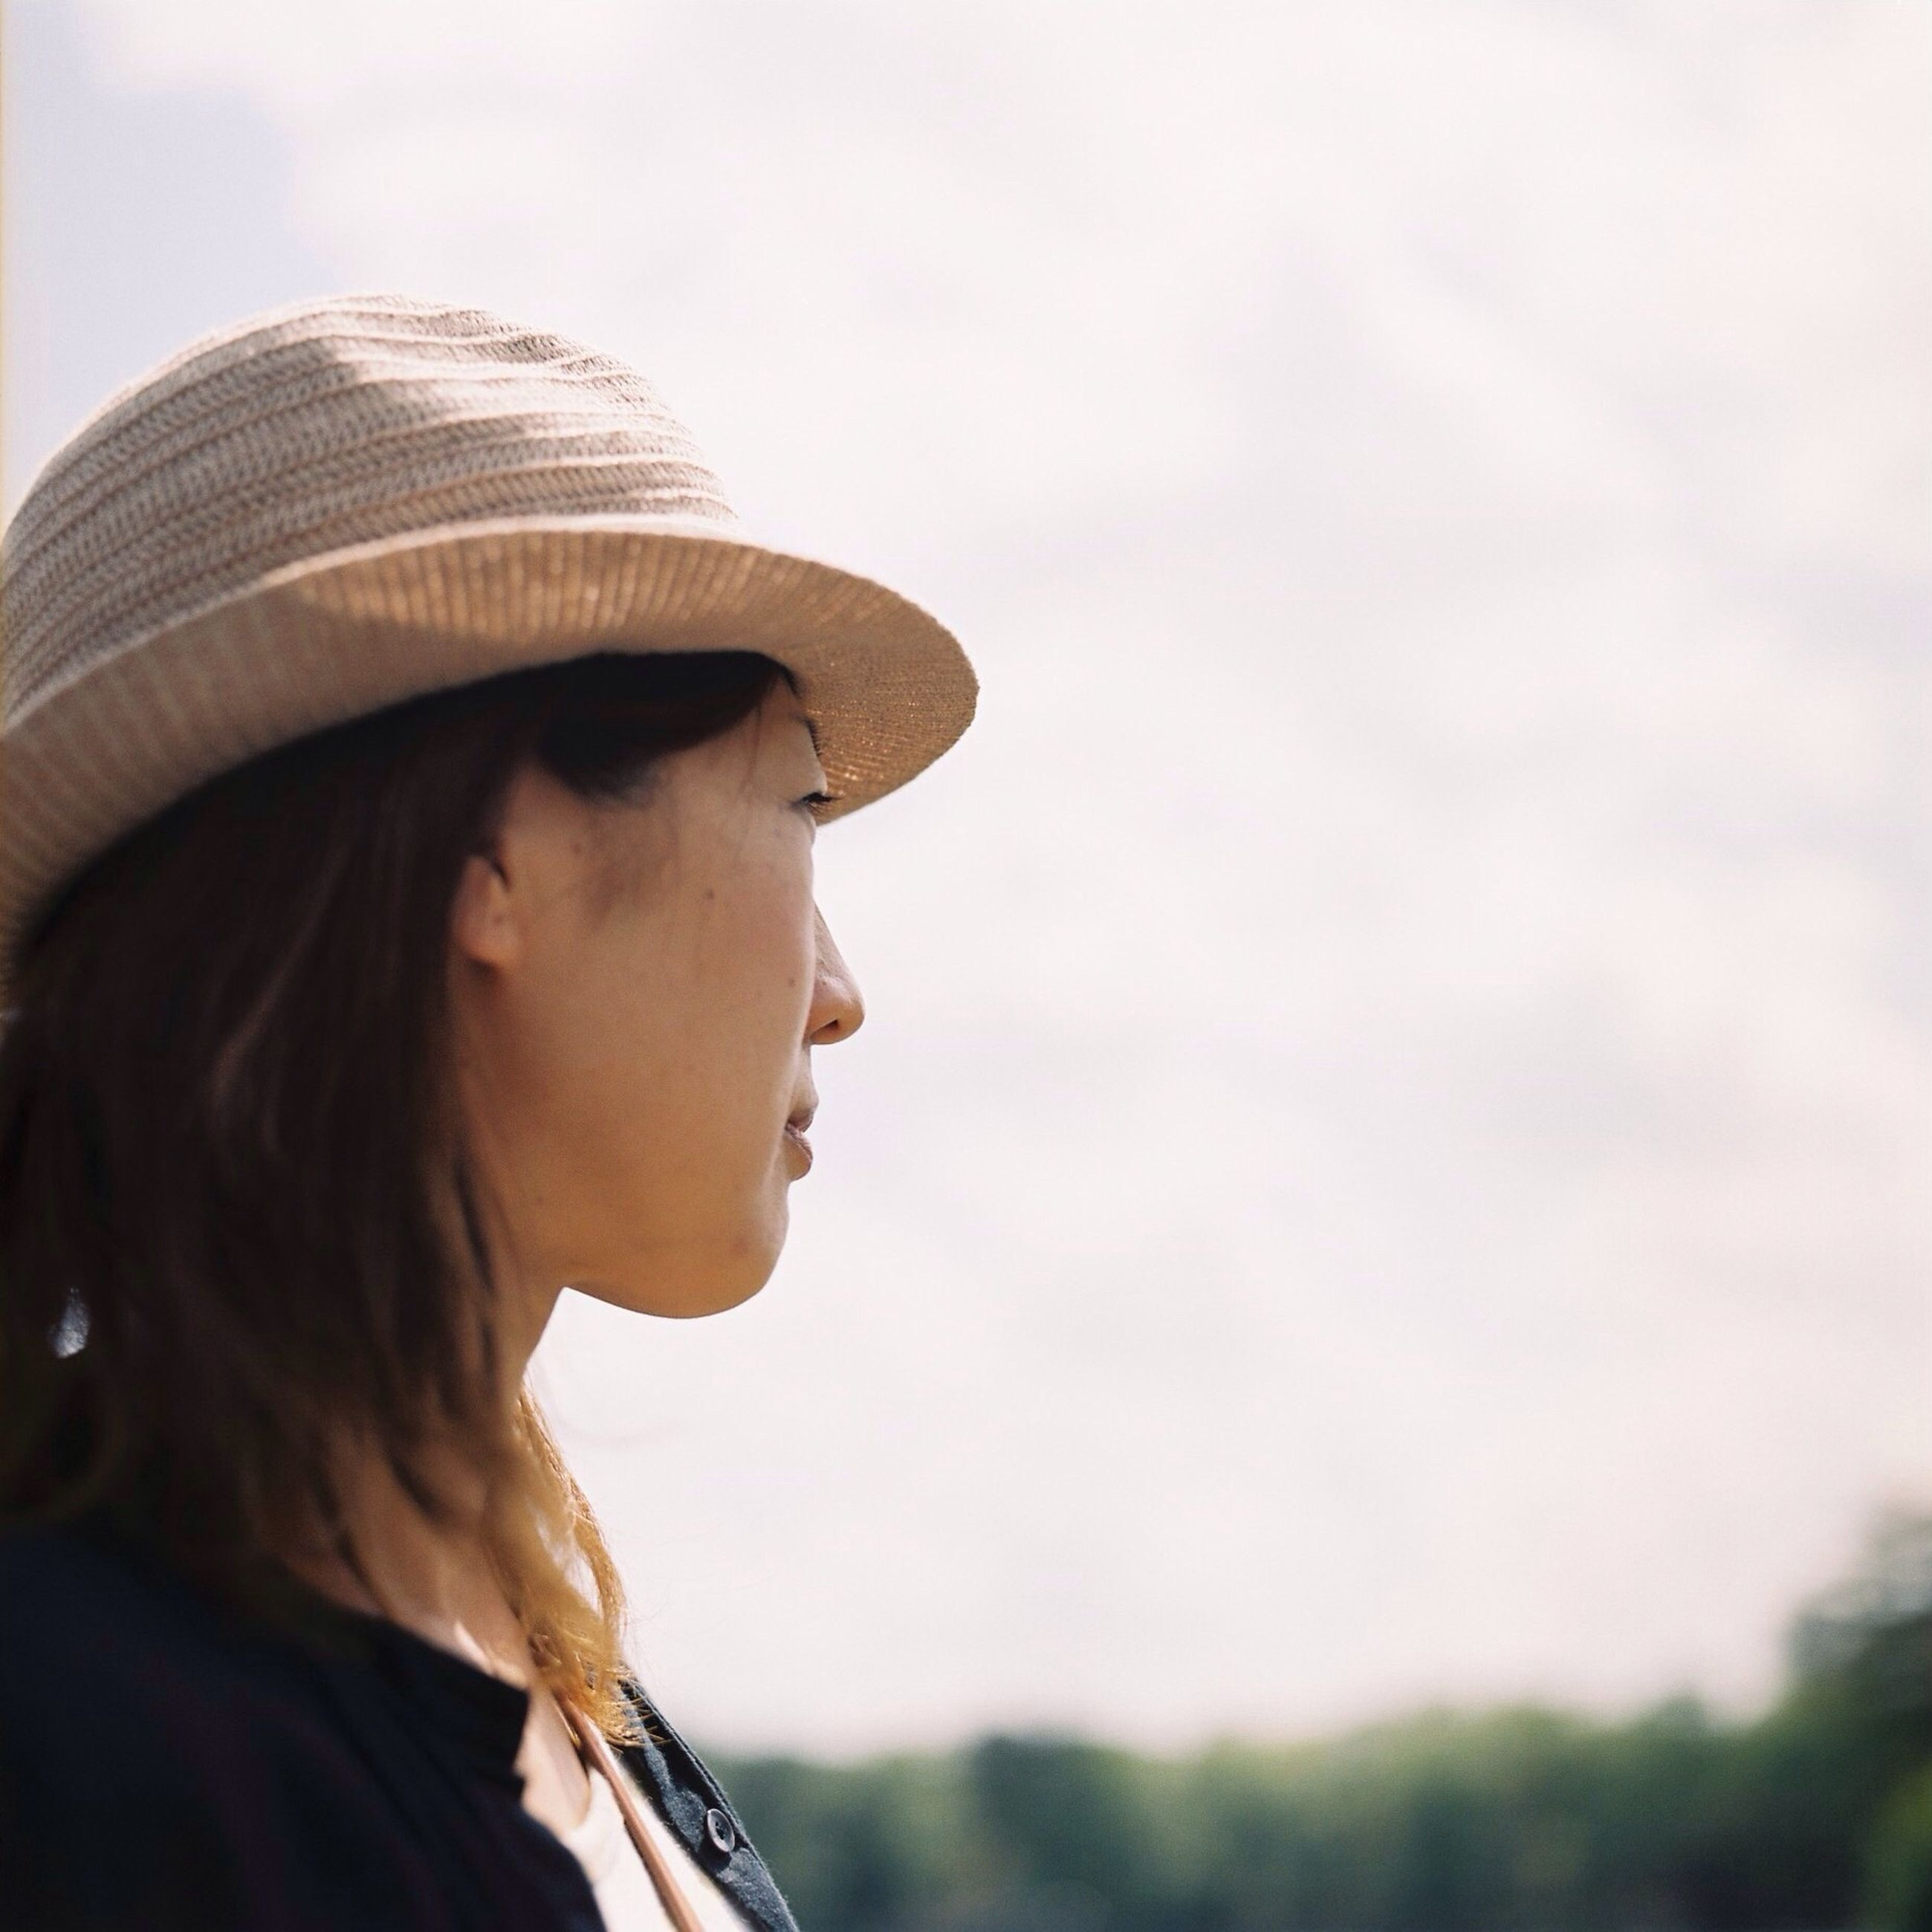 headshot, young adult, lifestyles, leisure activity, focus on foreground, sky, close-up, person, side view, head and shoulders, clear sky, portrait, waist up, sunglasses, day, outdoors, hat, young women